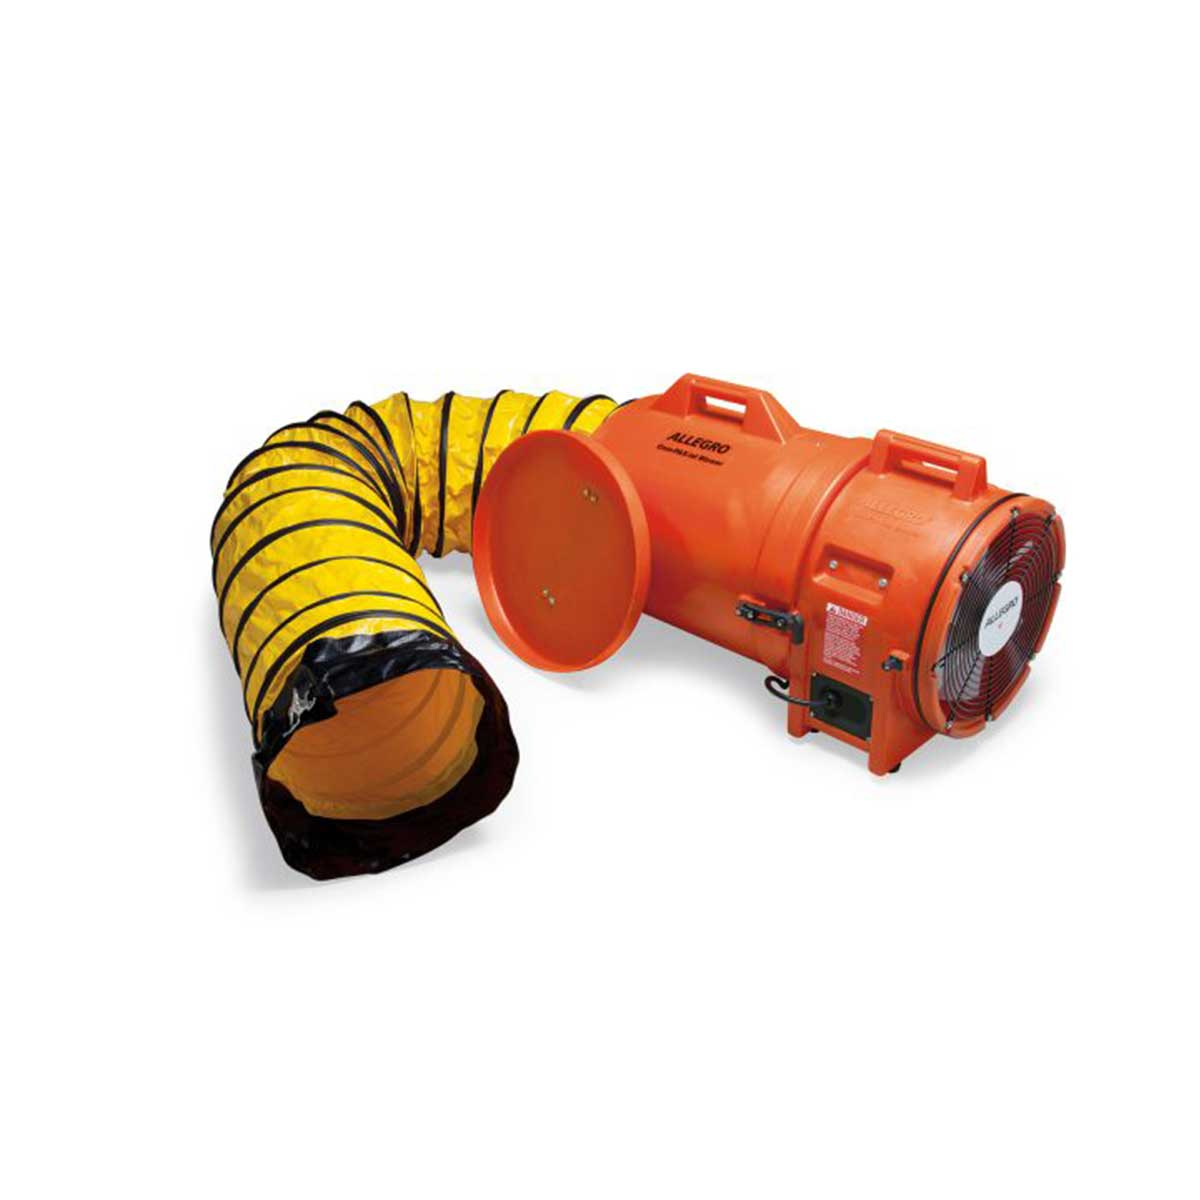 12″ Axial DC Plastic Blower w/ Canister & 15′ Ducting, 12V. Part: ALL-9546‐15. Pkg: 1